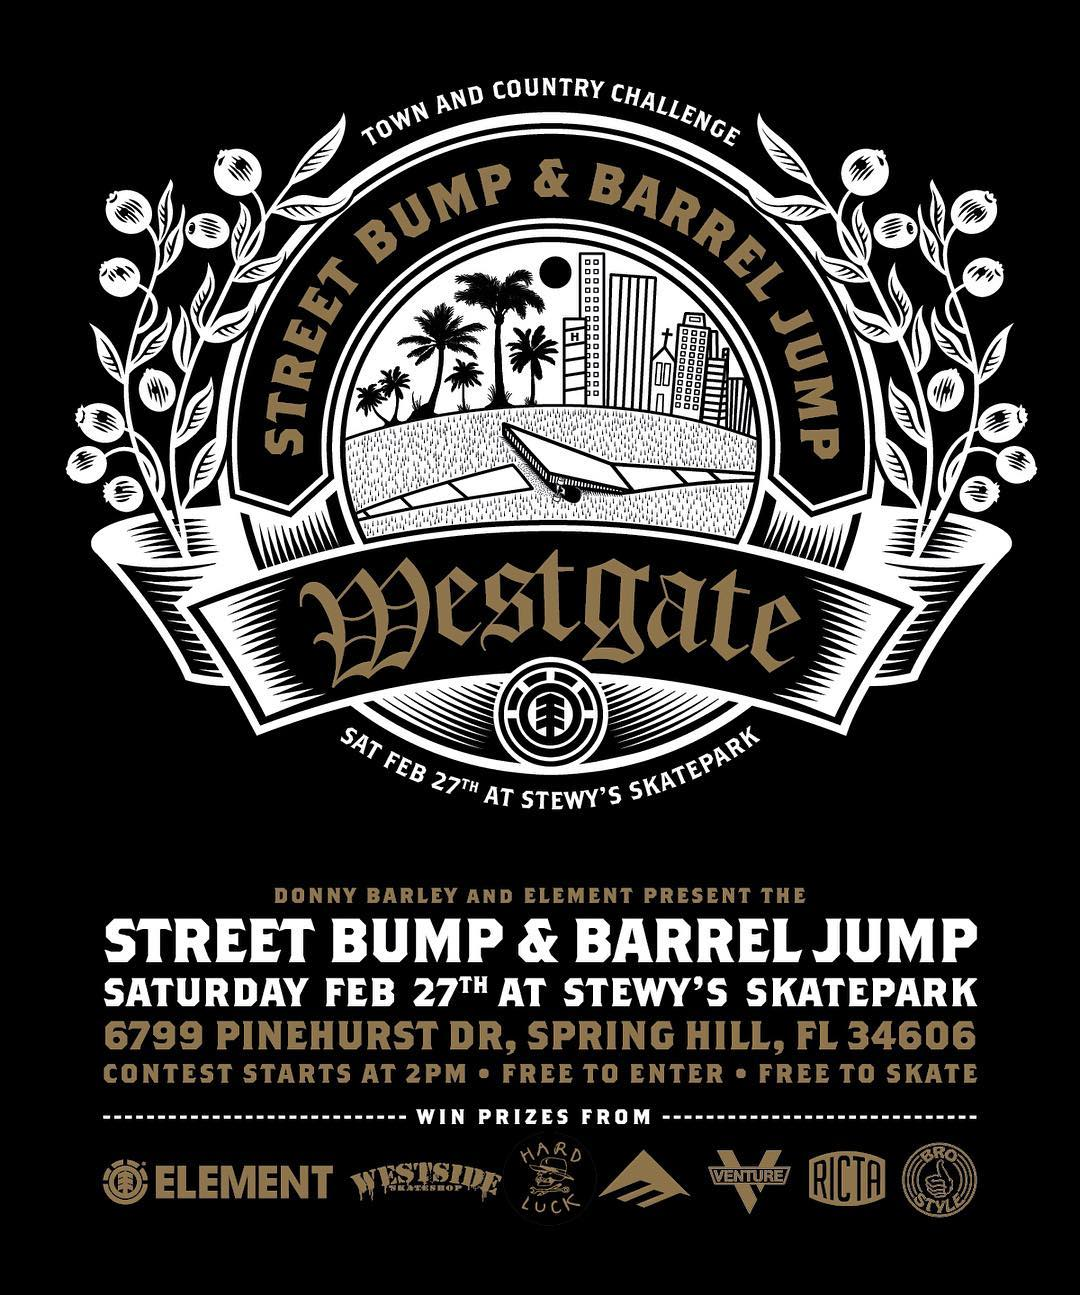 the @westgatebrandon #elementbarreljump continues this Saturday with @westsideskateshop in Spring Hill, Fl! >>> we'll also be at @theboardr on Sunday for a #noboardleftbehind in Gainesville >>> @donnybarley in attendance for both!